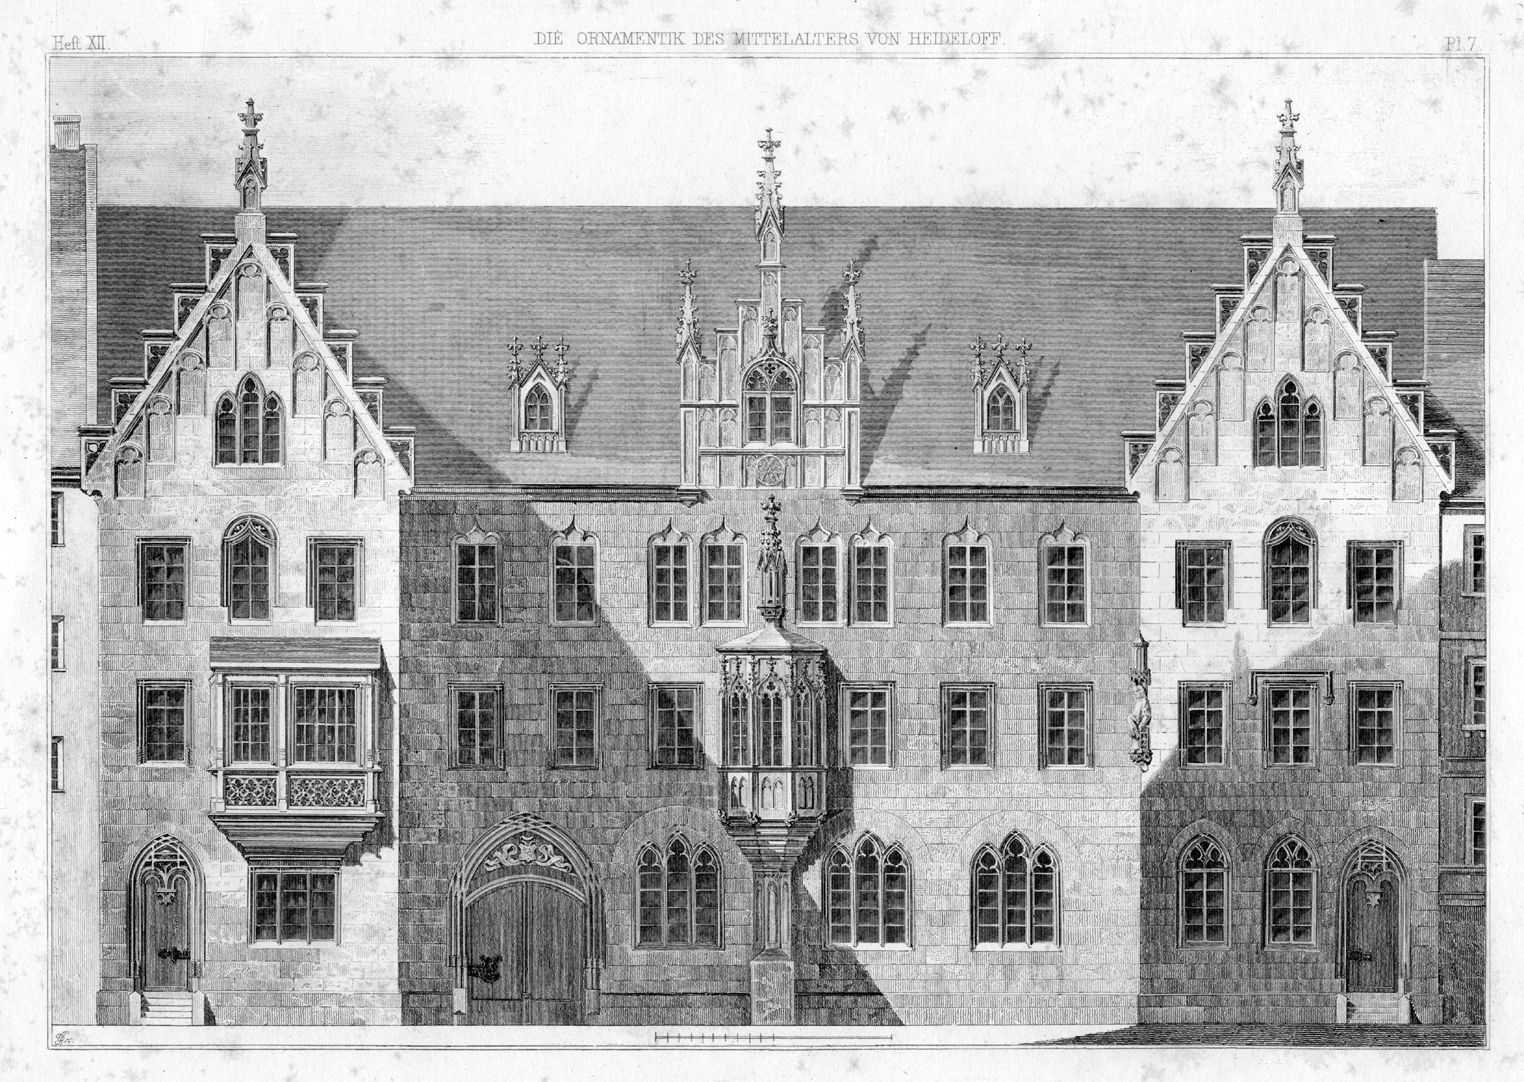 St. Lorenz-Church-Vicarage St. Lorenz-Church-Vicarage, engraving from his book on ornamentation in the Middle Ages (new edition). With its strict symmetry it is a completely classical building with incorporation of a small chörlein.